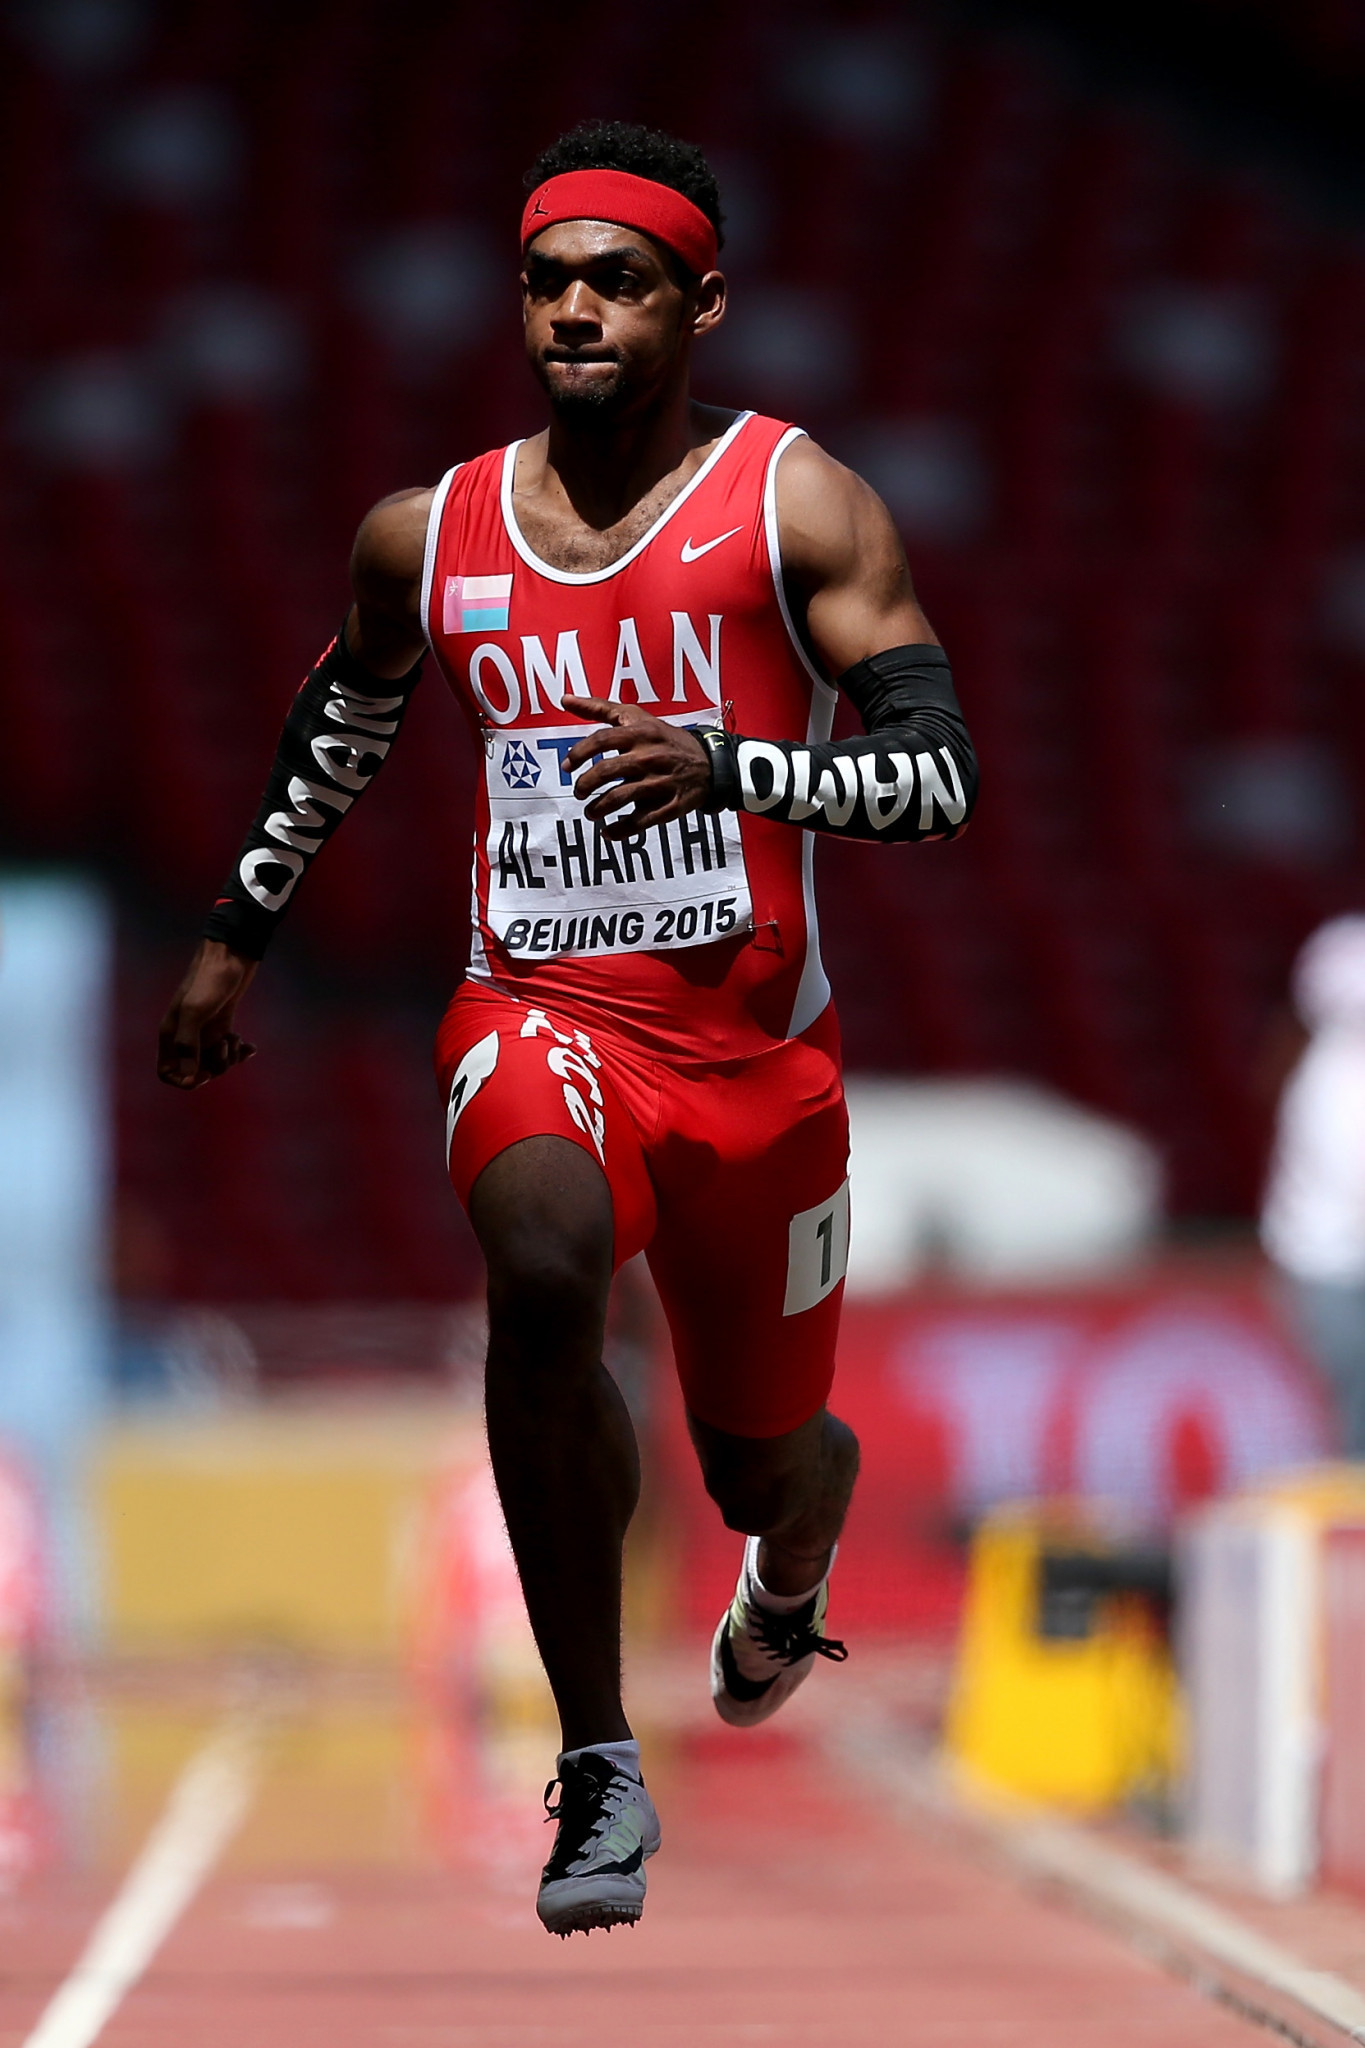 Oman hopes to compete in athletics at Jakarta Palembang 2018 and Buenos Aires 2018 ©Getty Images